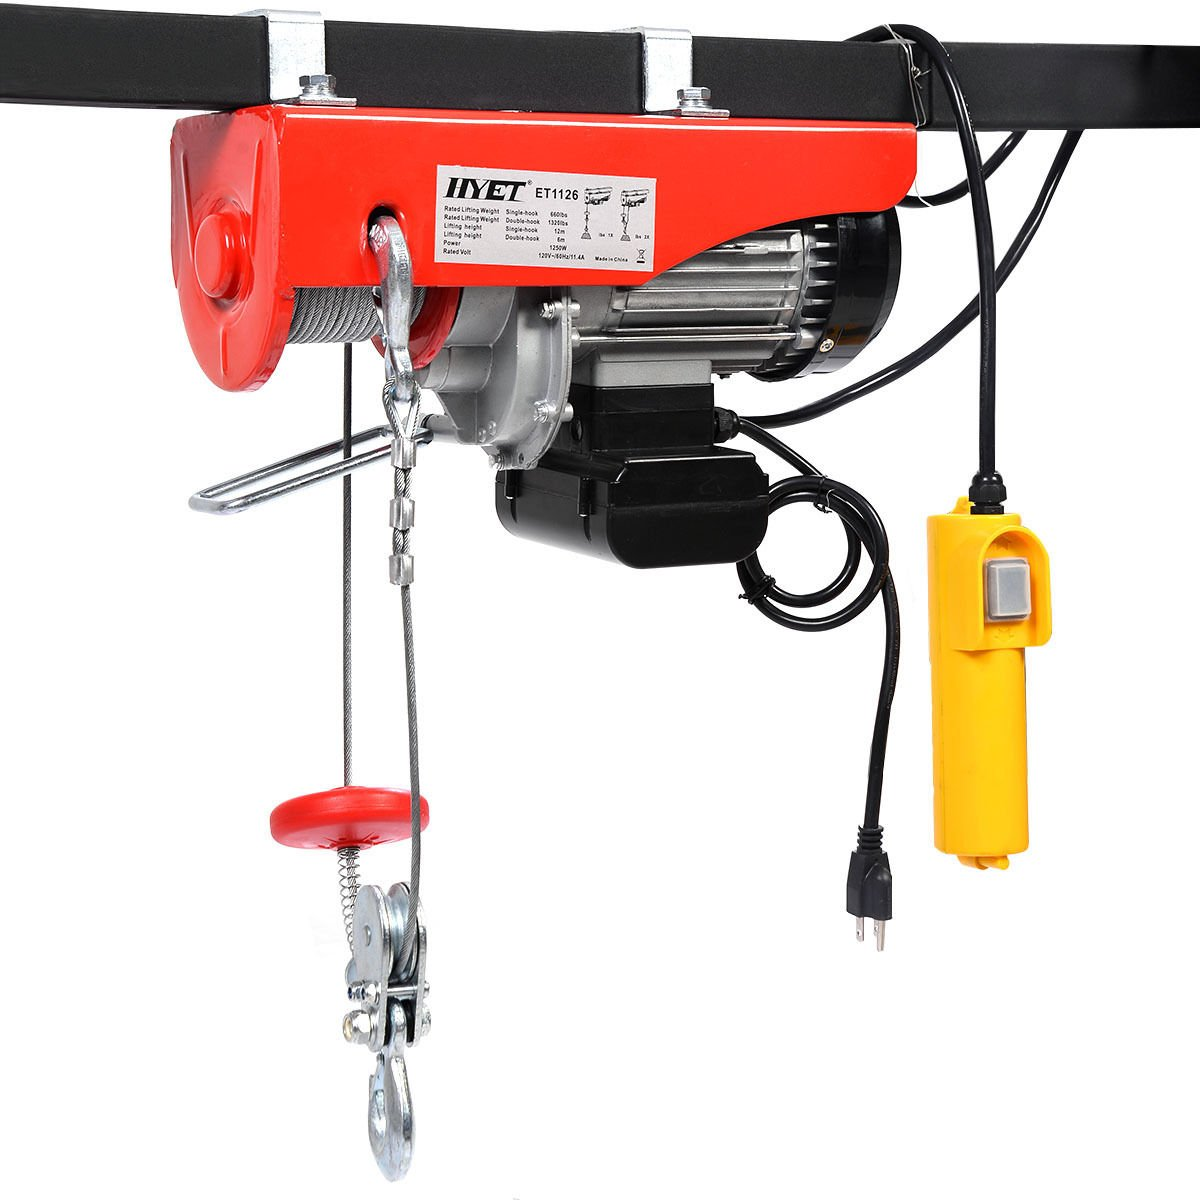 71RfxVDrE7L._SL1200_ amazon com goplus lift electric hoist garage auto shop electric GoAnimate Plus at edmiracle.co